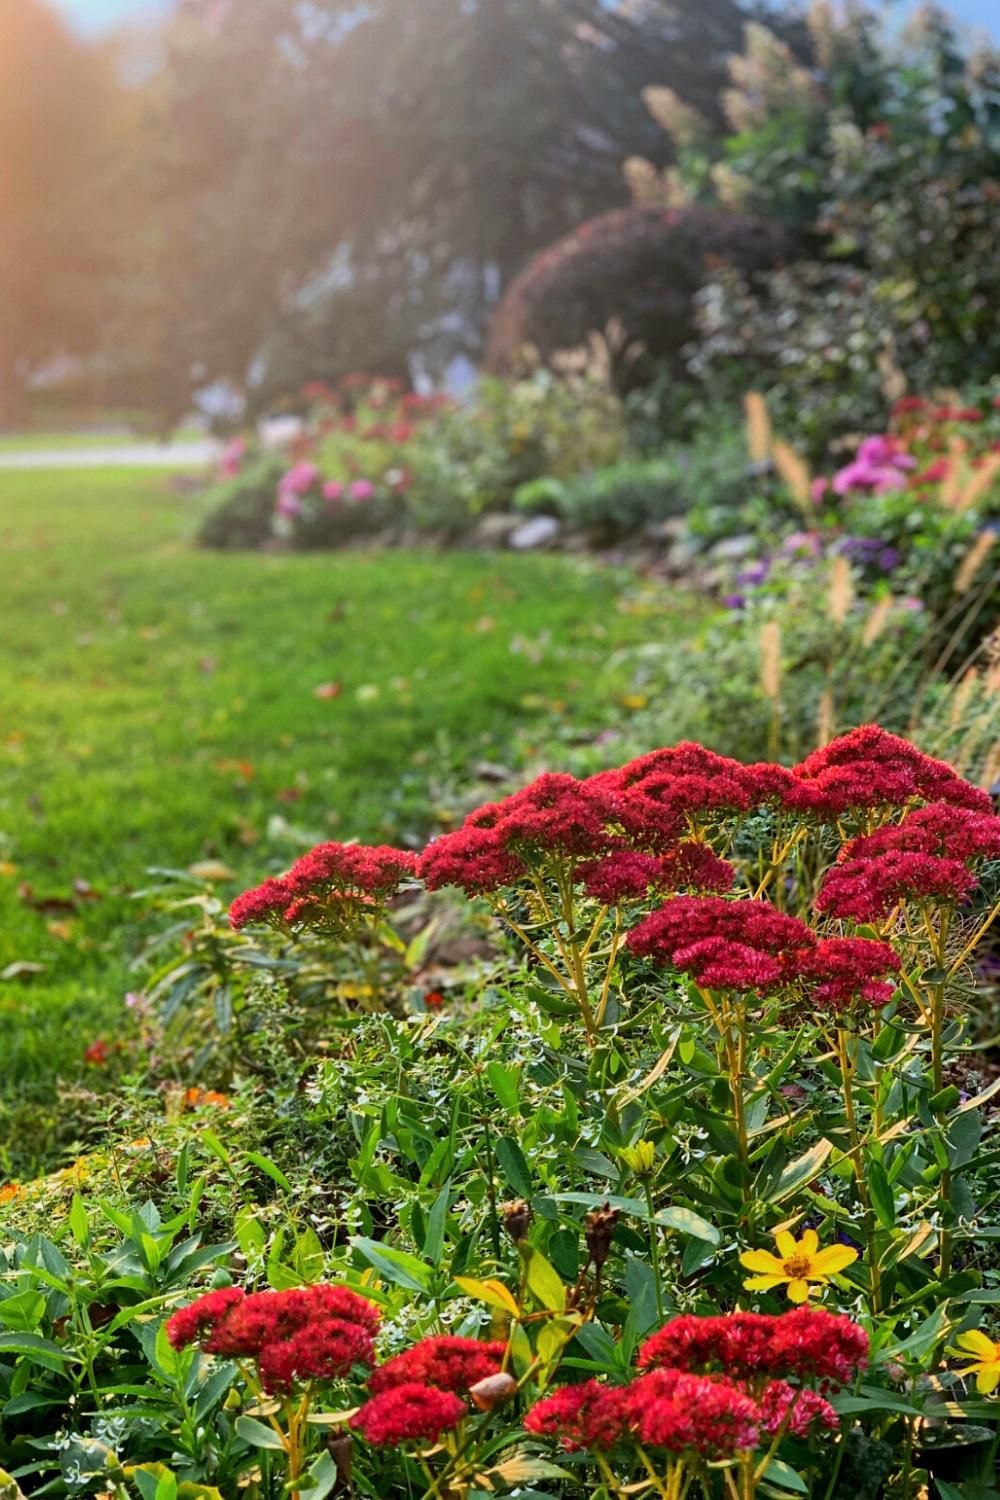 Not sure how to start preparing the garden for winter? Follow these tips to get your garden ready for colder temps. #preparinggardenforwinter #gardeningtips #gardentips #gardentour #gardendesign #gardenimages #cottagegarden #fallgardening #gardening #garden #plantingideas #flowergarden #cottagegardenstyle #prettyflowers #fallgardenflowers